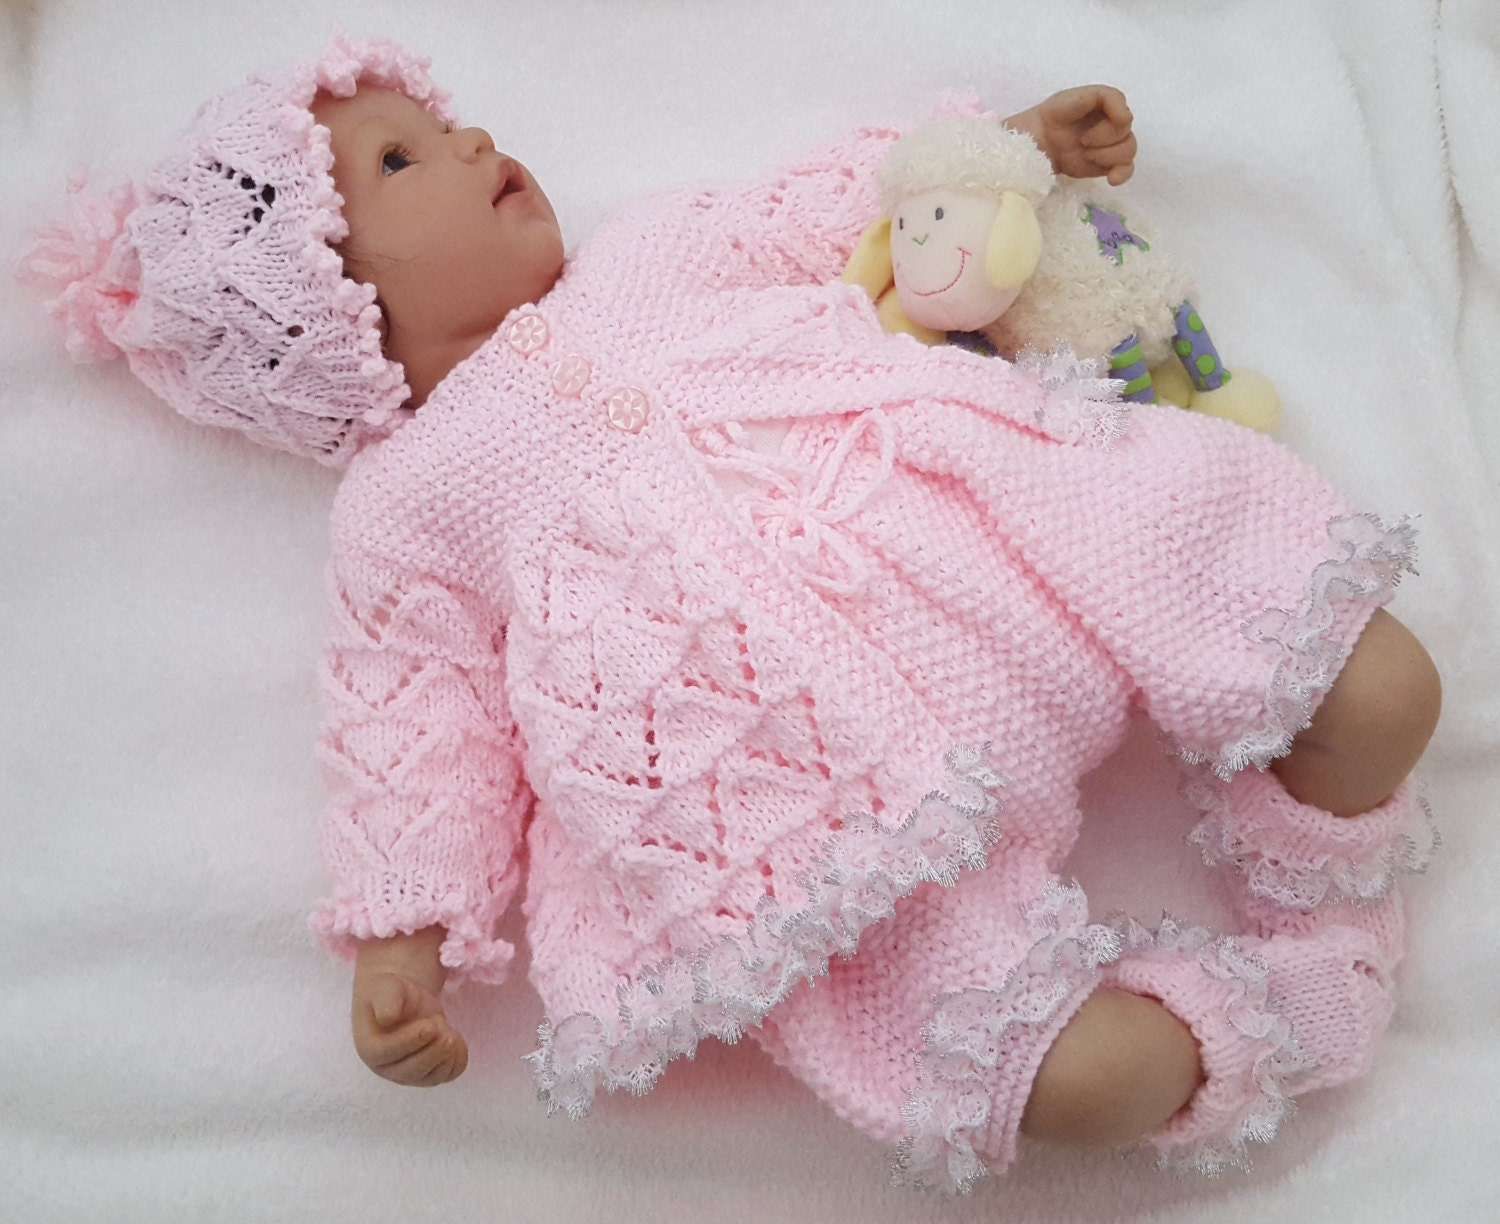 Baby Girl Knitted Sweater Pattern : Baby Girls Knitting Pattern Download PDF Knitting Pattern